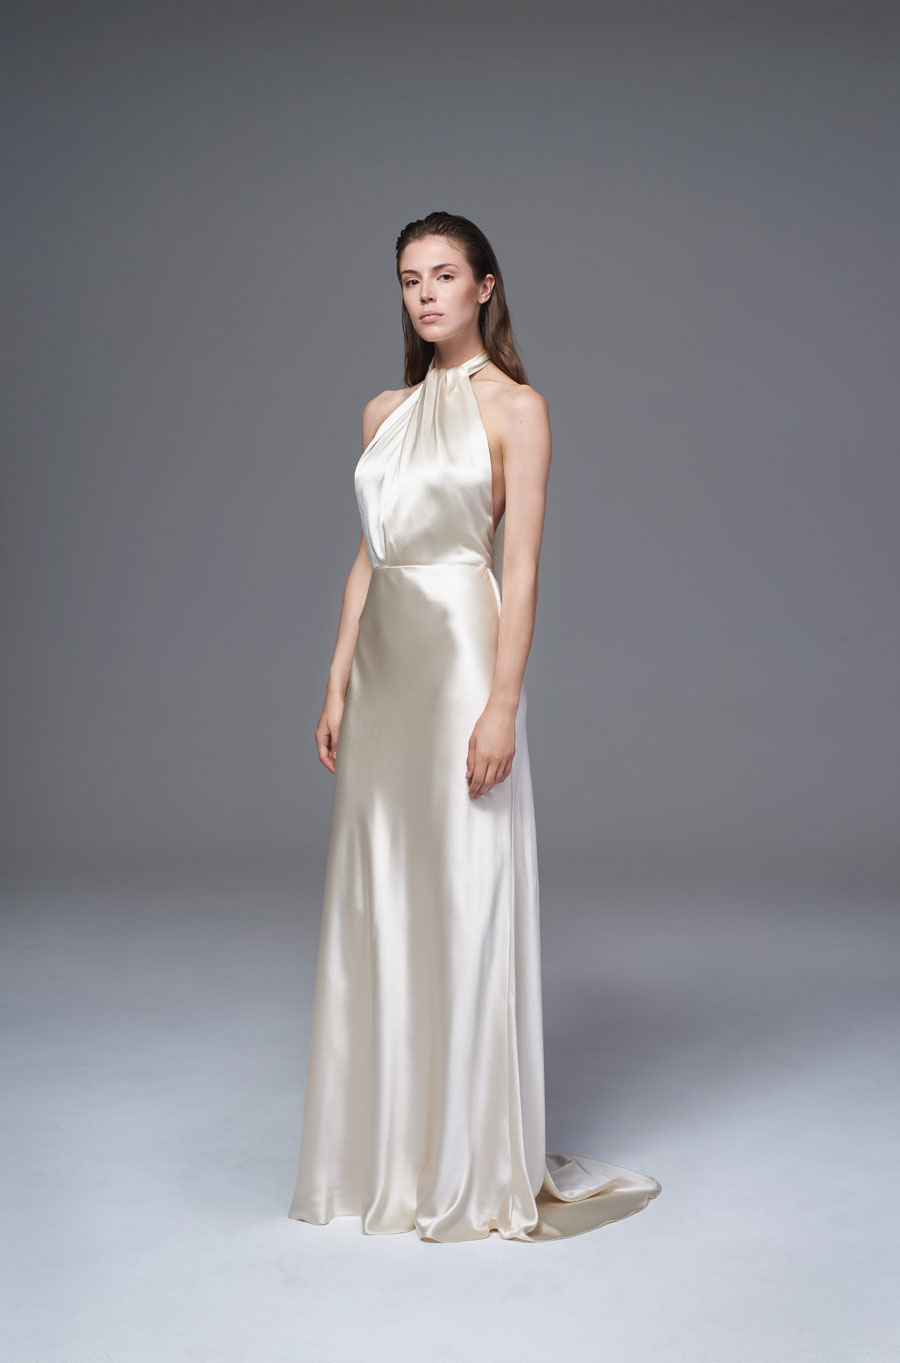 Wedding dresses 2017 the wild love collection by halfpenny london the voluminous bow jacket blurs the boundaries between bridal and fashion while the cheryl dress features a slinky bias cut with ties to wrap across ombrellifo Image collections